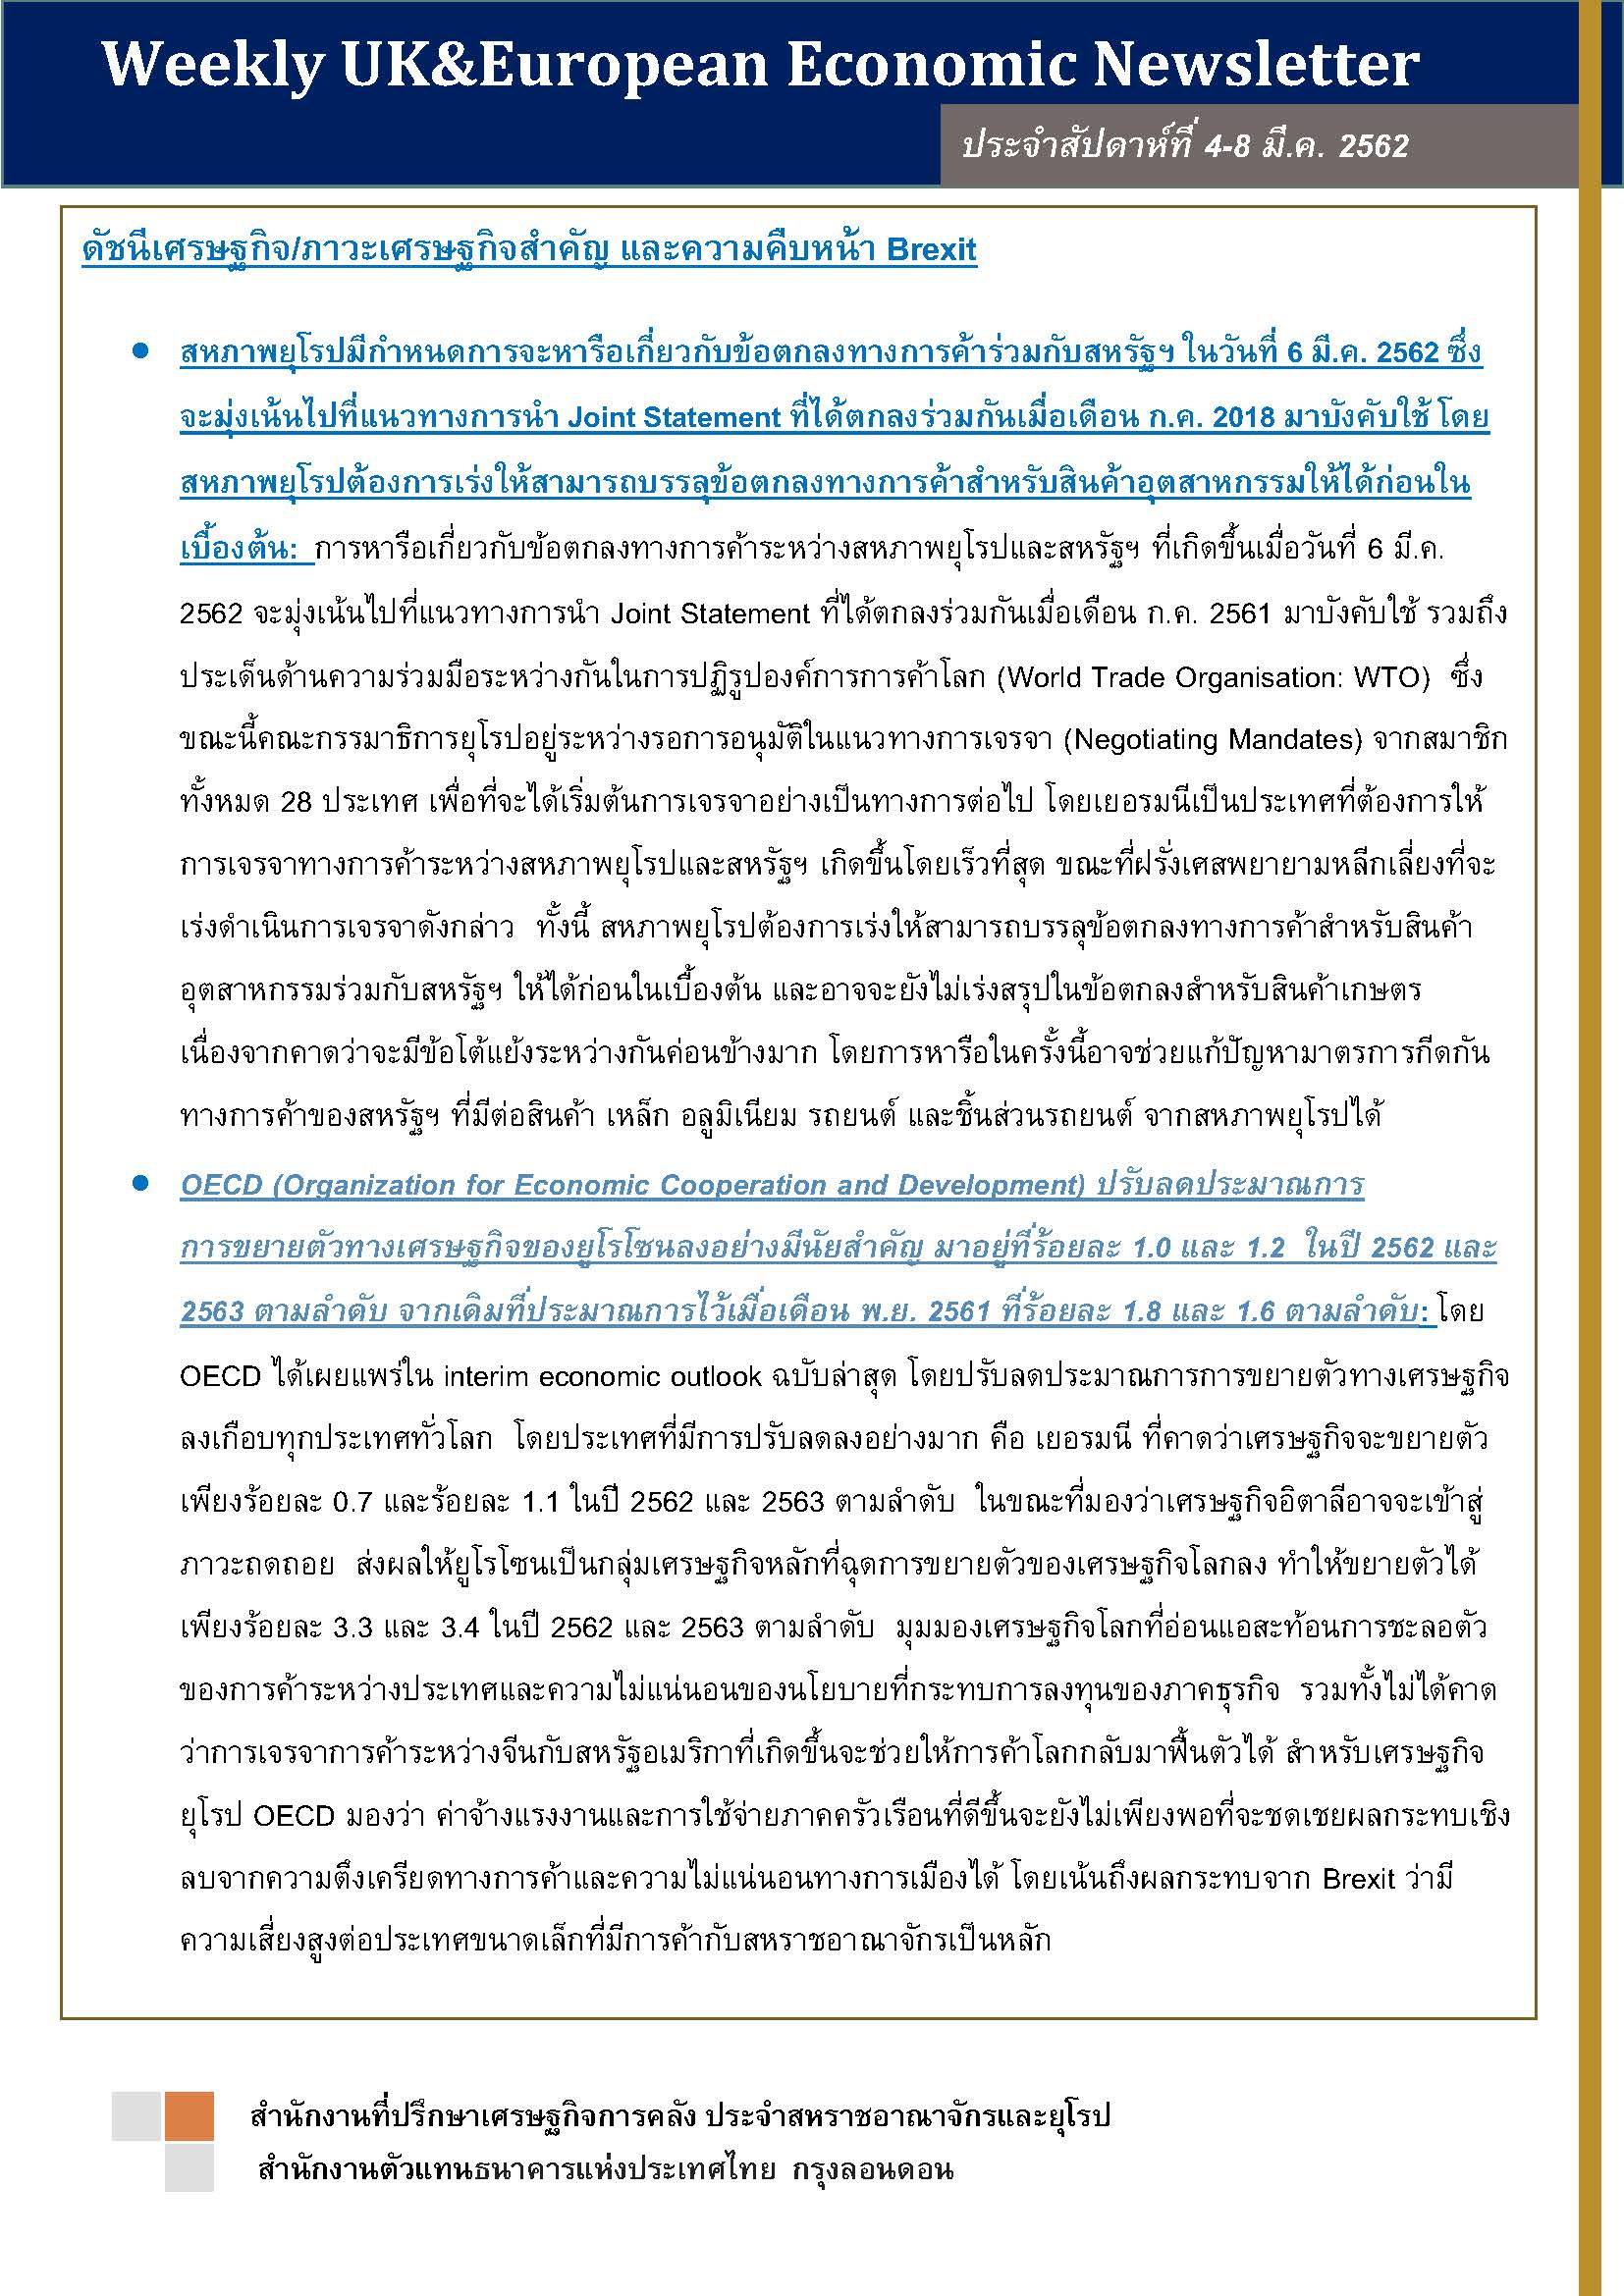 Weekly-UK-European-Economic-News-Summary-(4-8-มีนาคม-2019)_Page_1.jpg